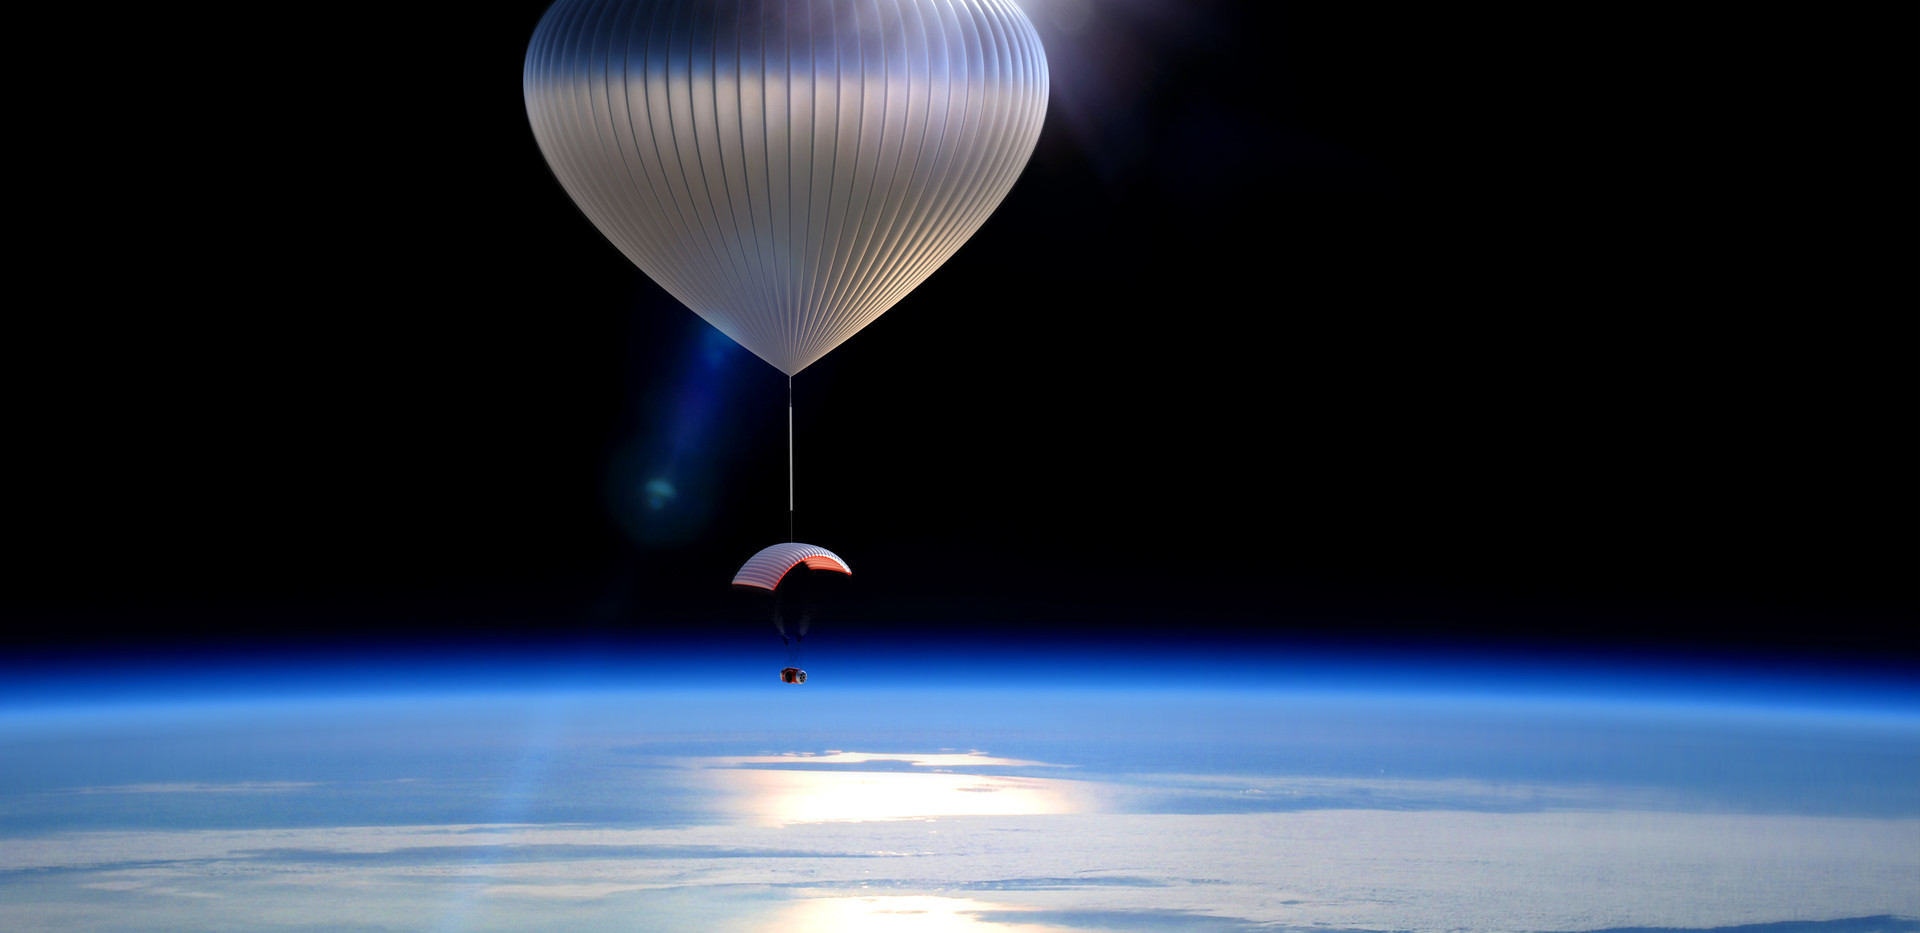 WV_Capsule_Balloon_Space.jpg